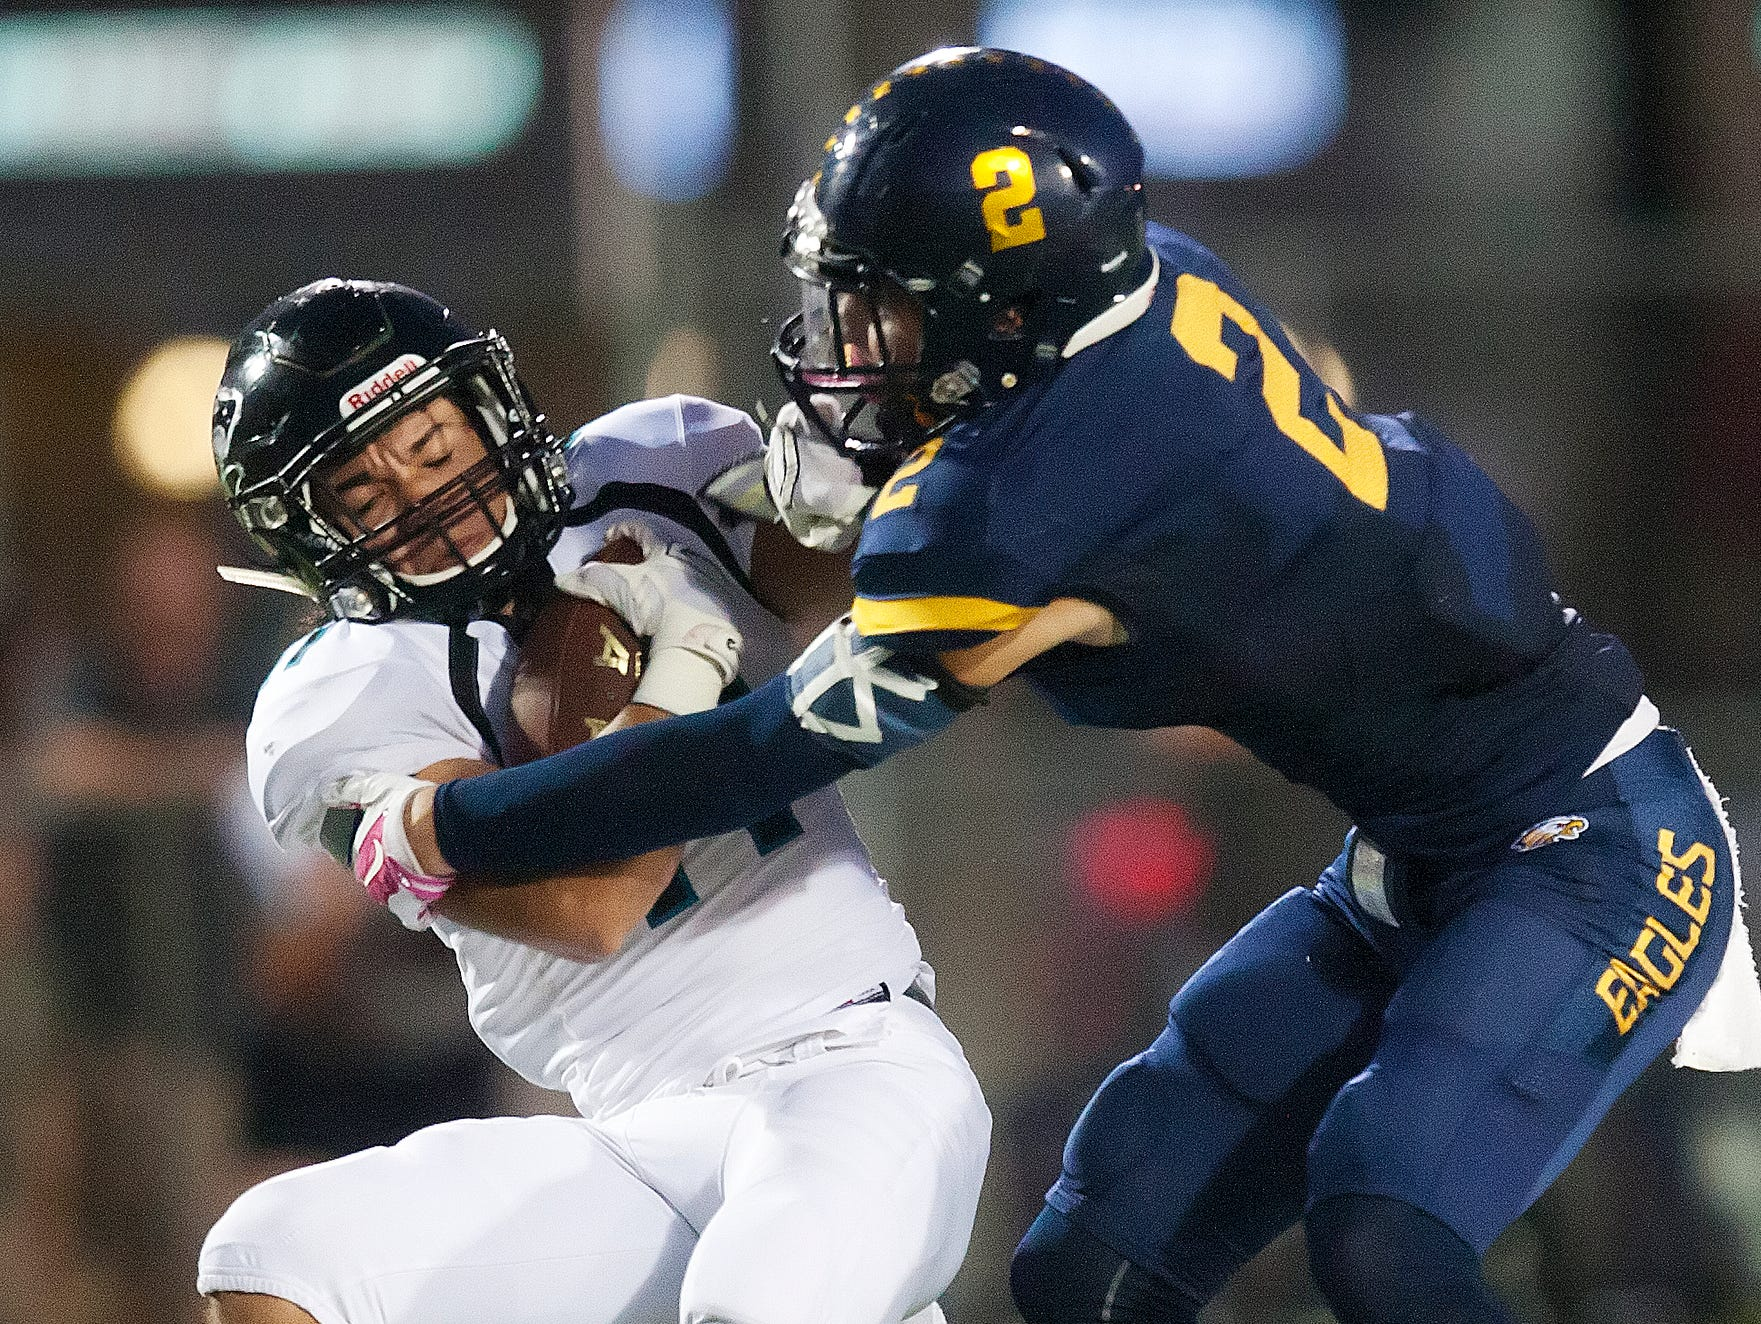 Naples High School's Chris Riley, right, tackles Gulf Coast's Daniel Rendon for a loss Friday at Naples High School. Naples beat Gulf Coast 42-6.